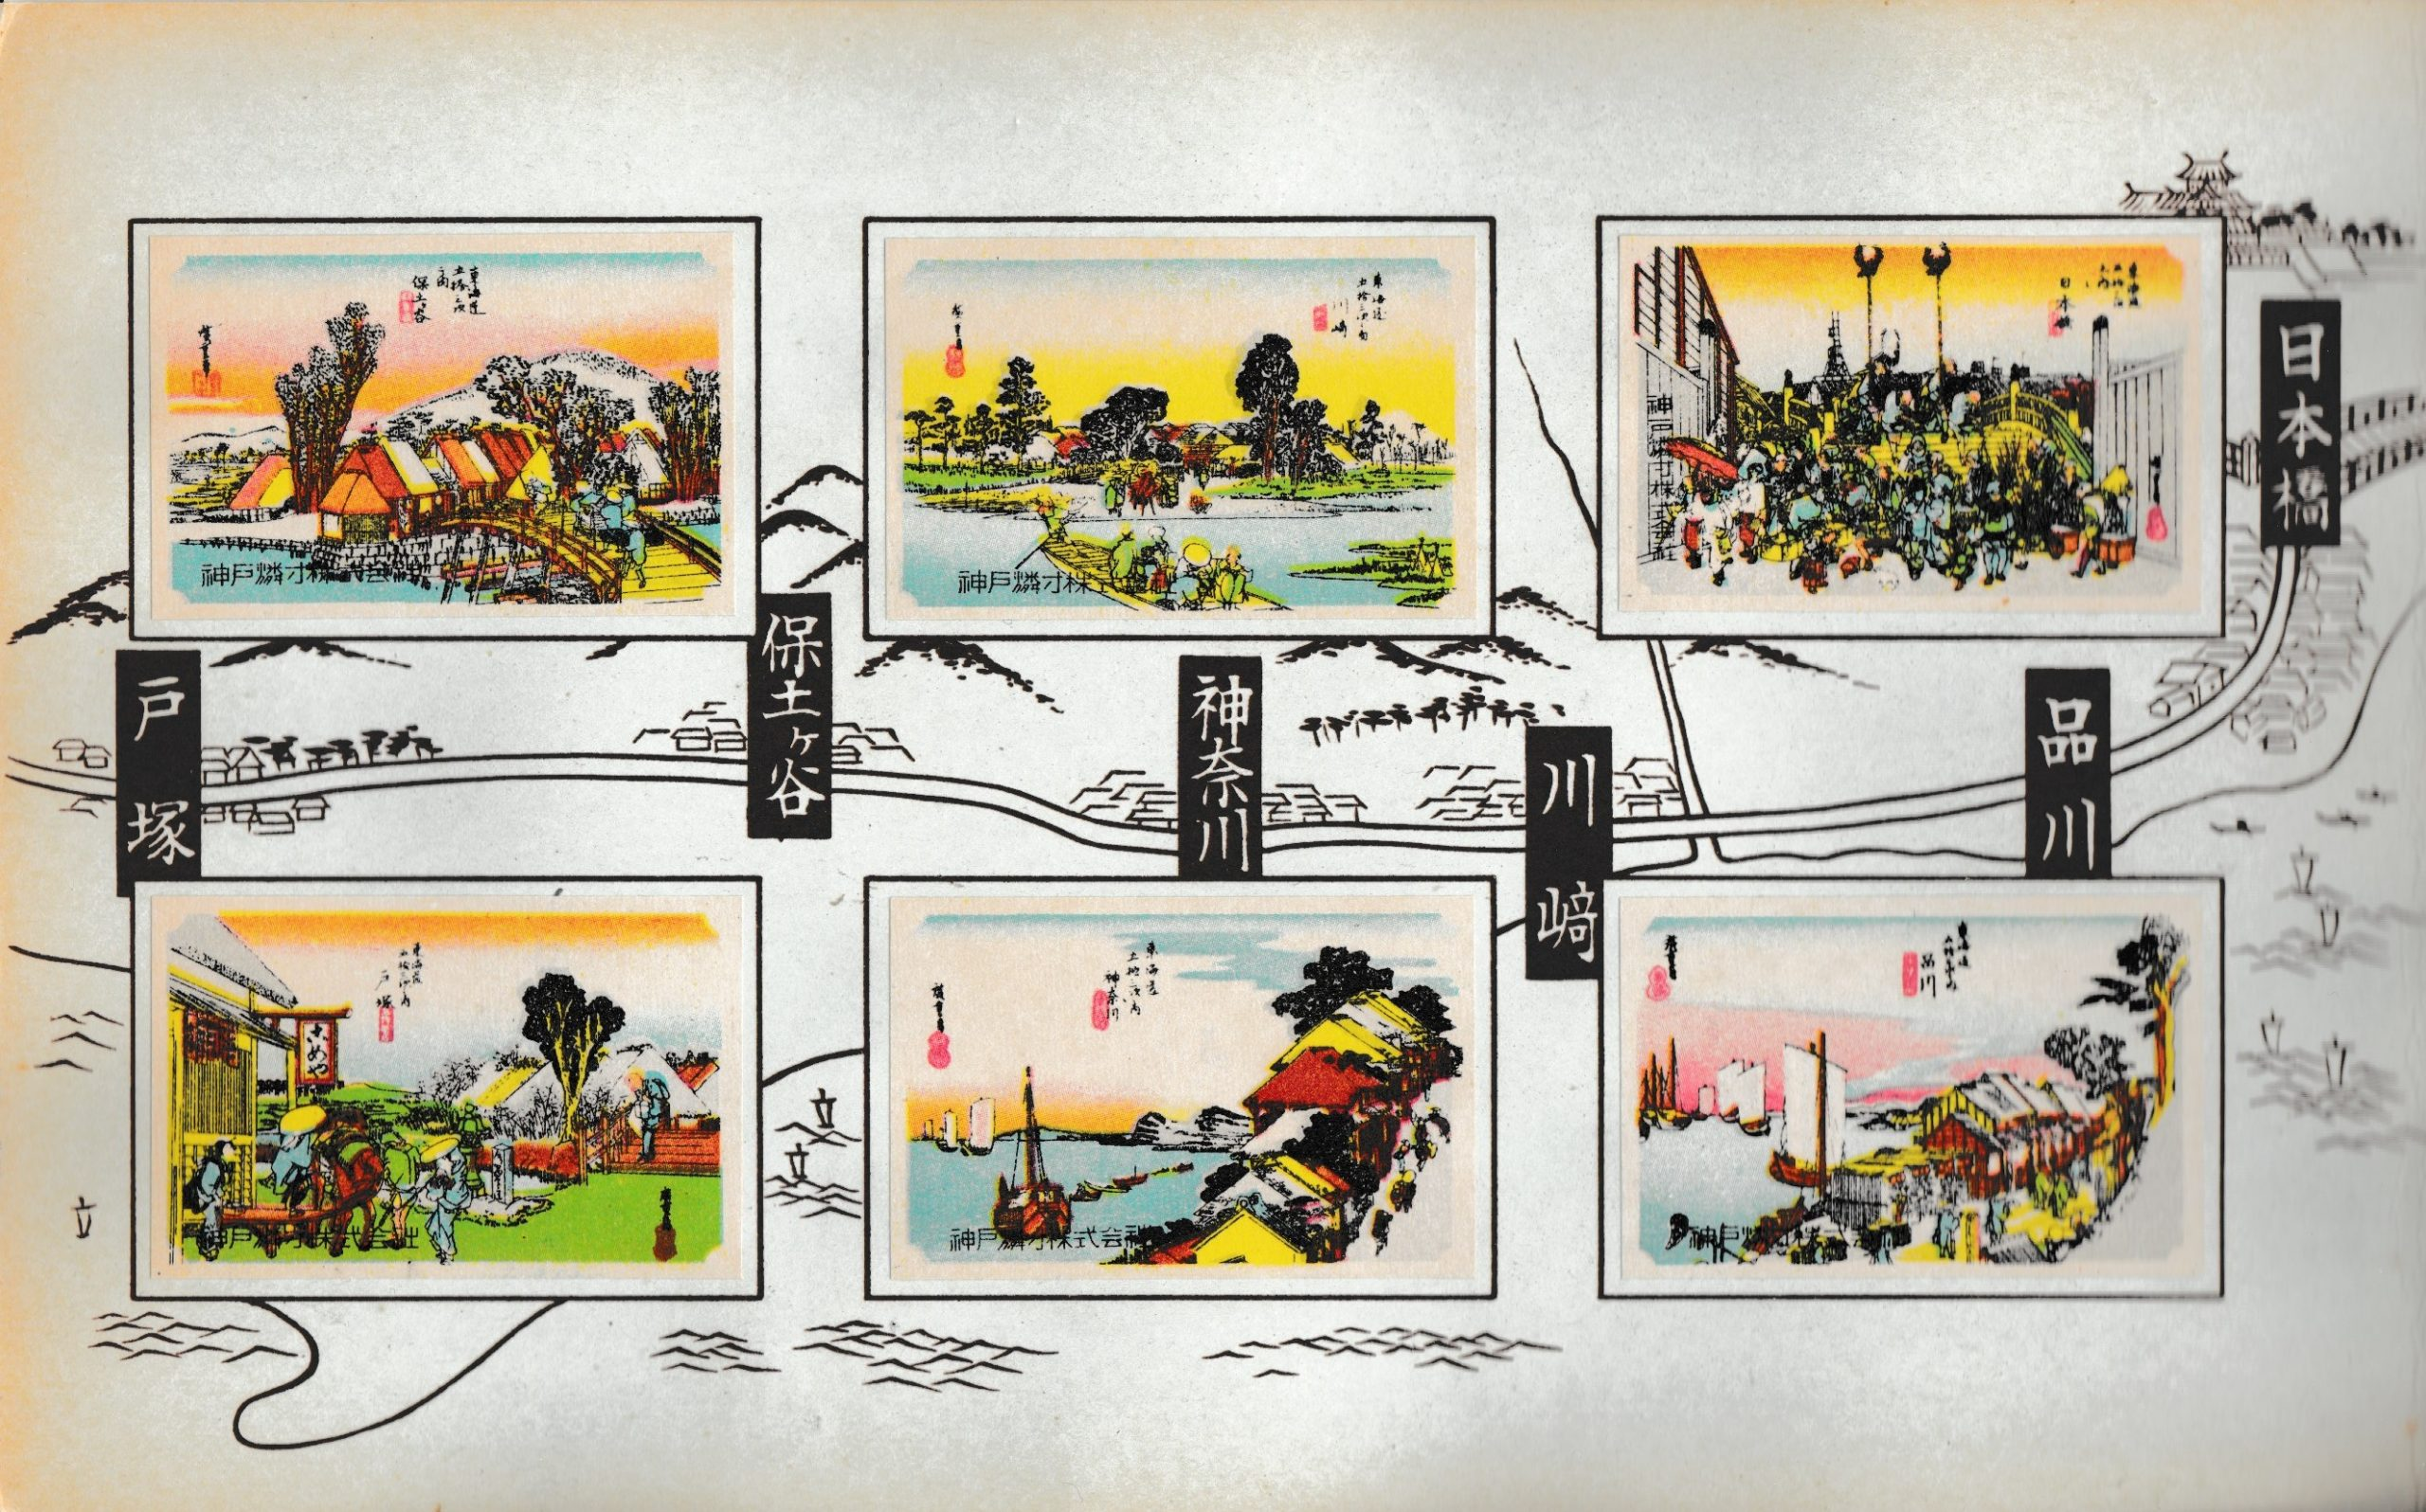 Labels from the Tōkaidō Road series, in a collectors' album